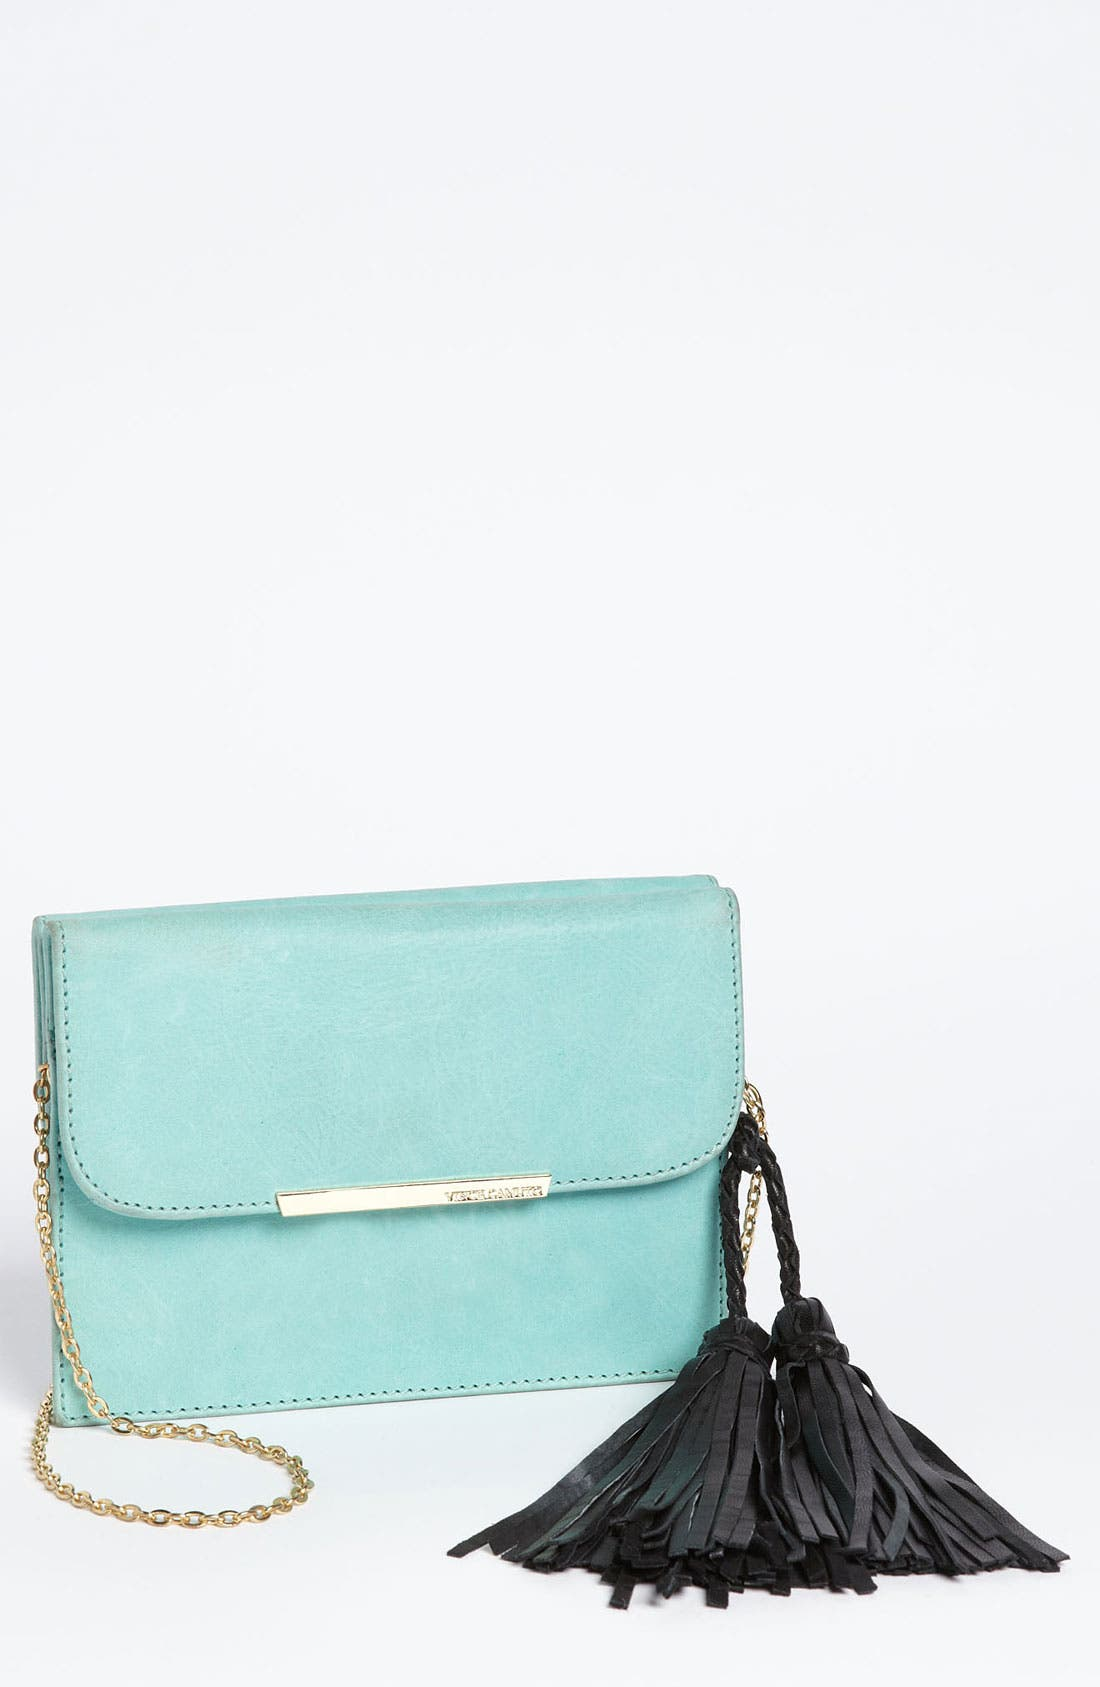 Main Image - Vince Camuto 'Vany' Crossbody Bag